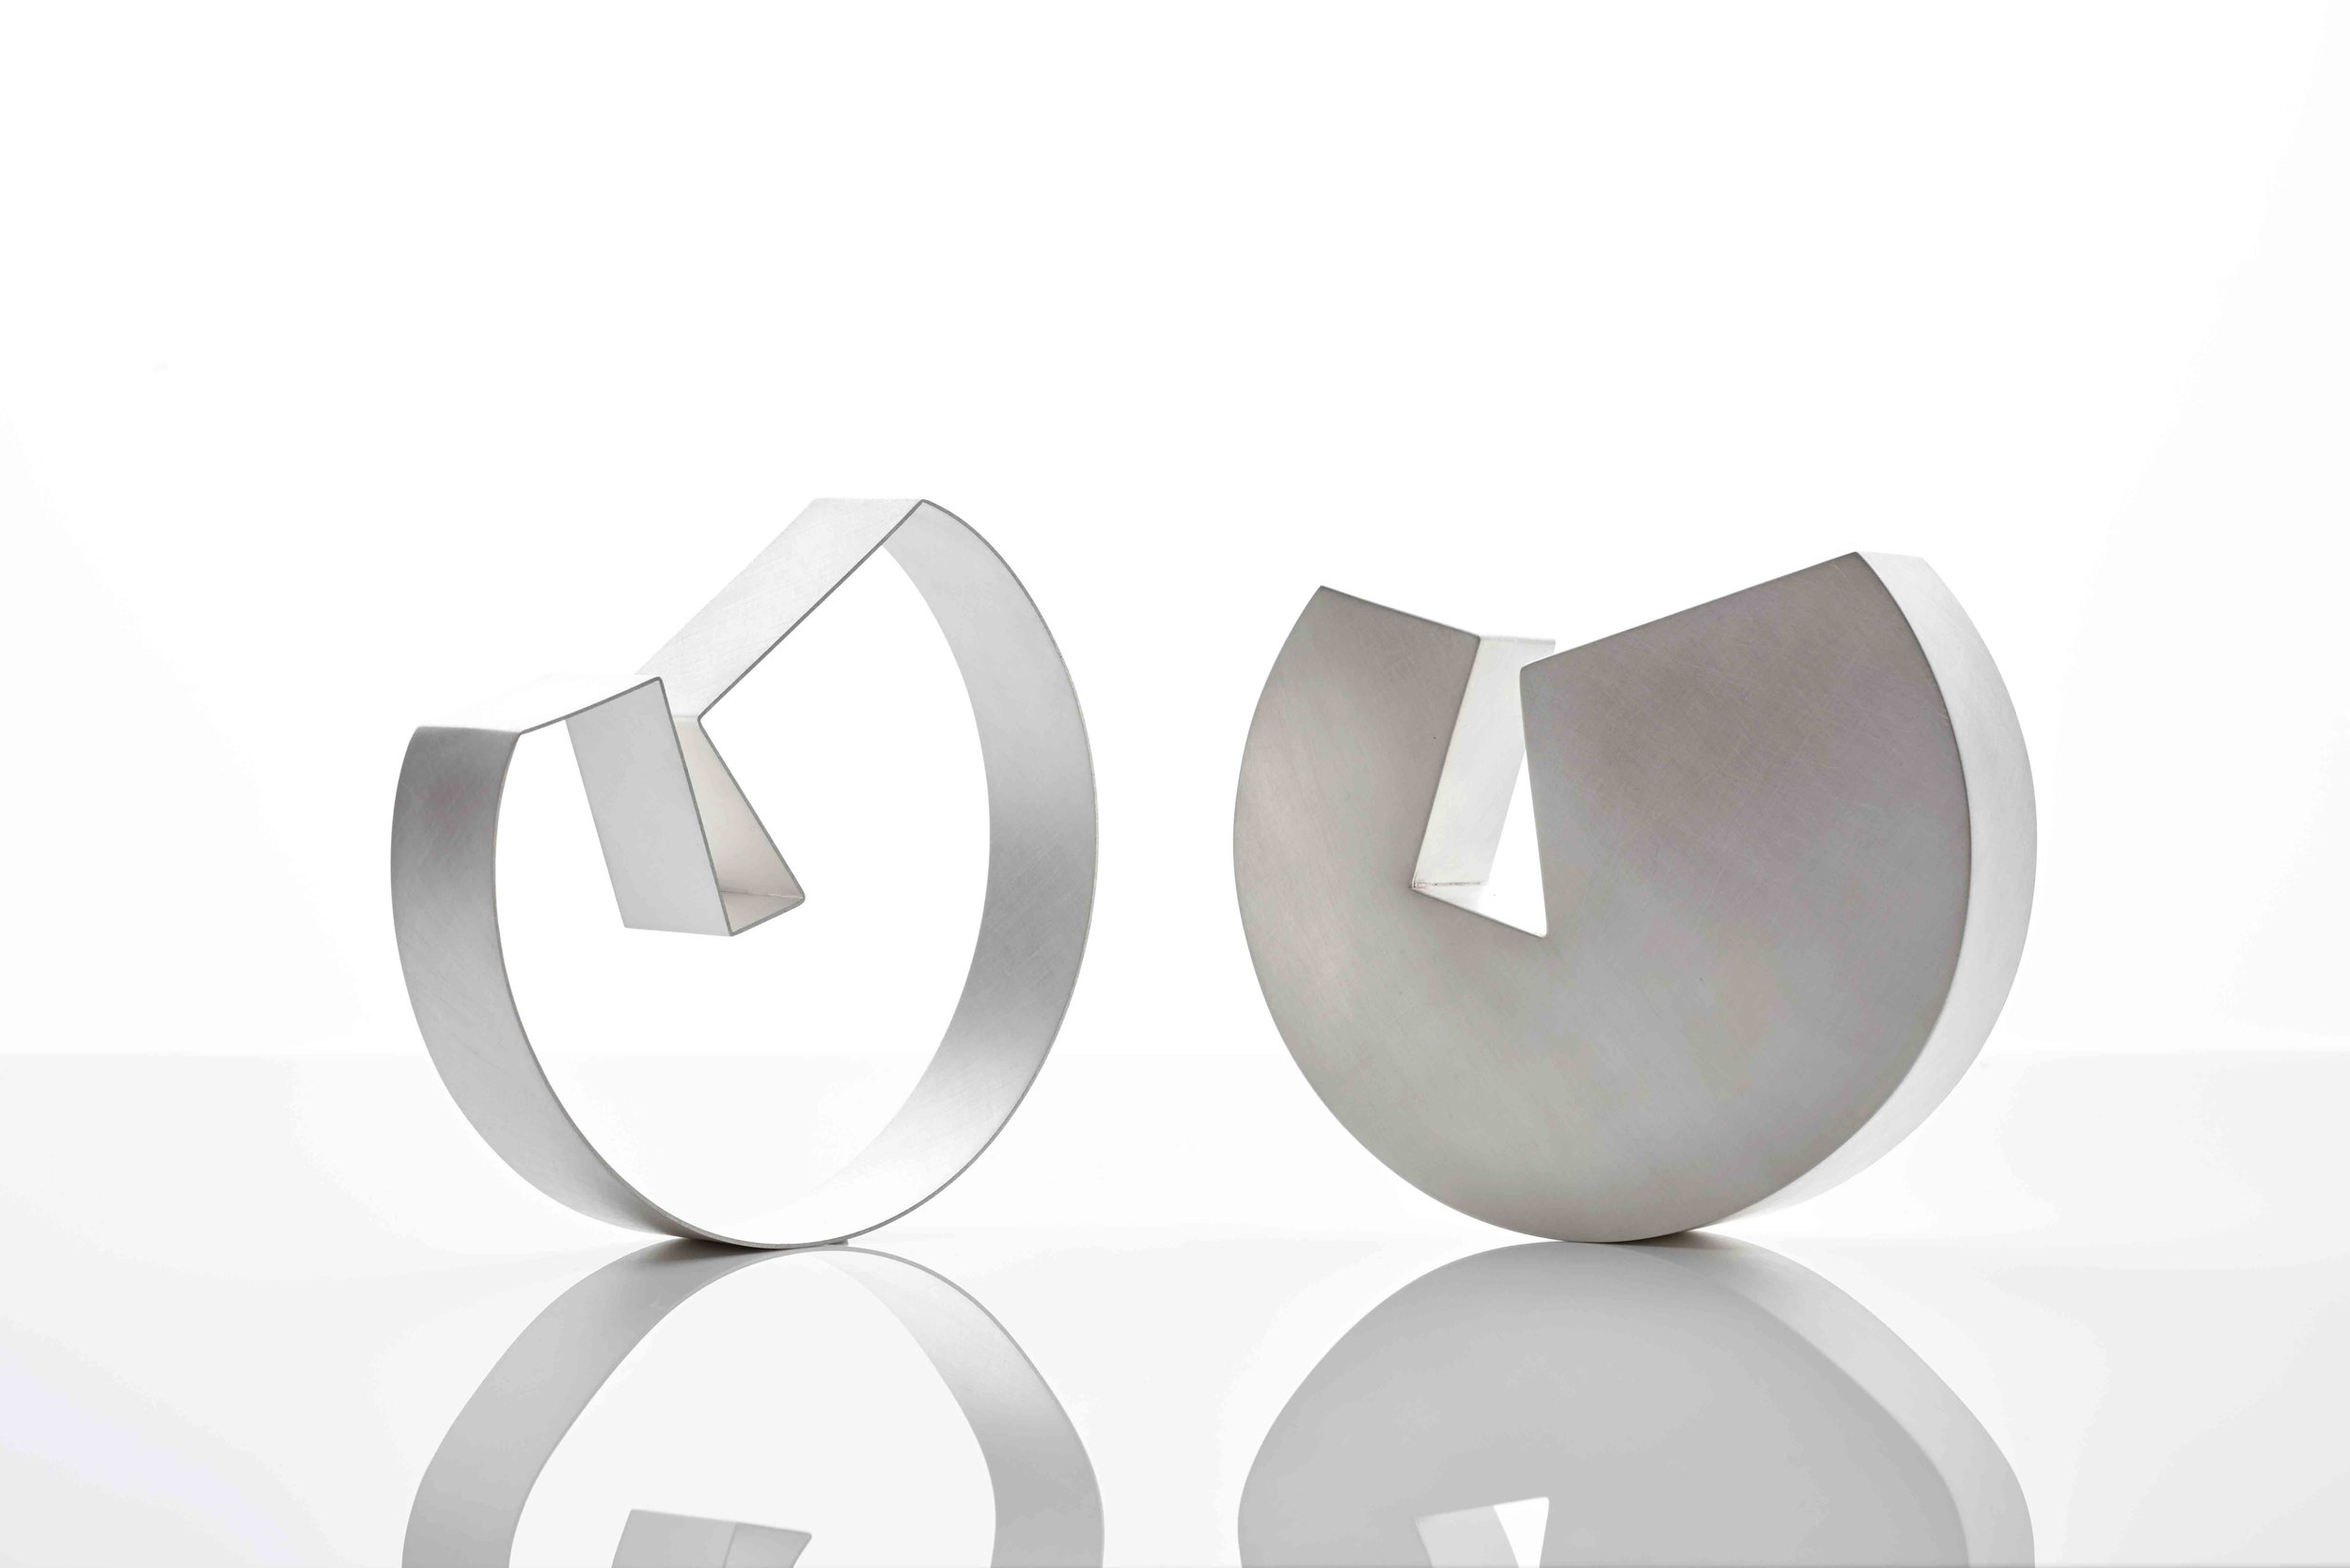 Juliette_Bigley_Two_Bowls_Sterling_Silver_2015_1.jpg